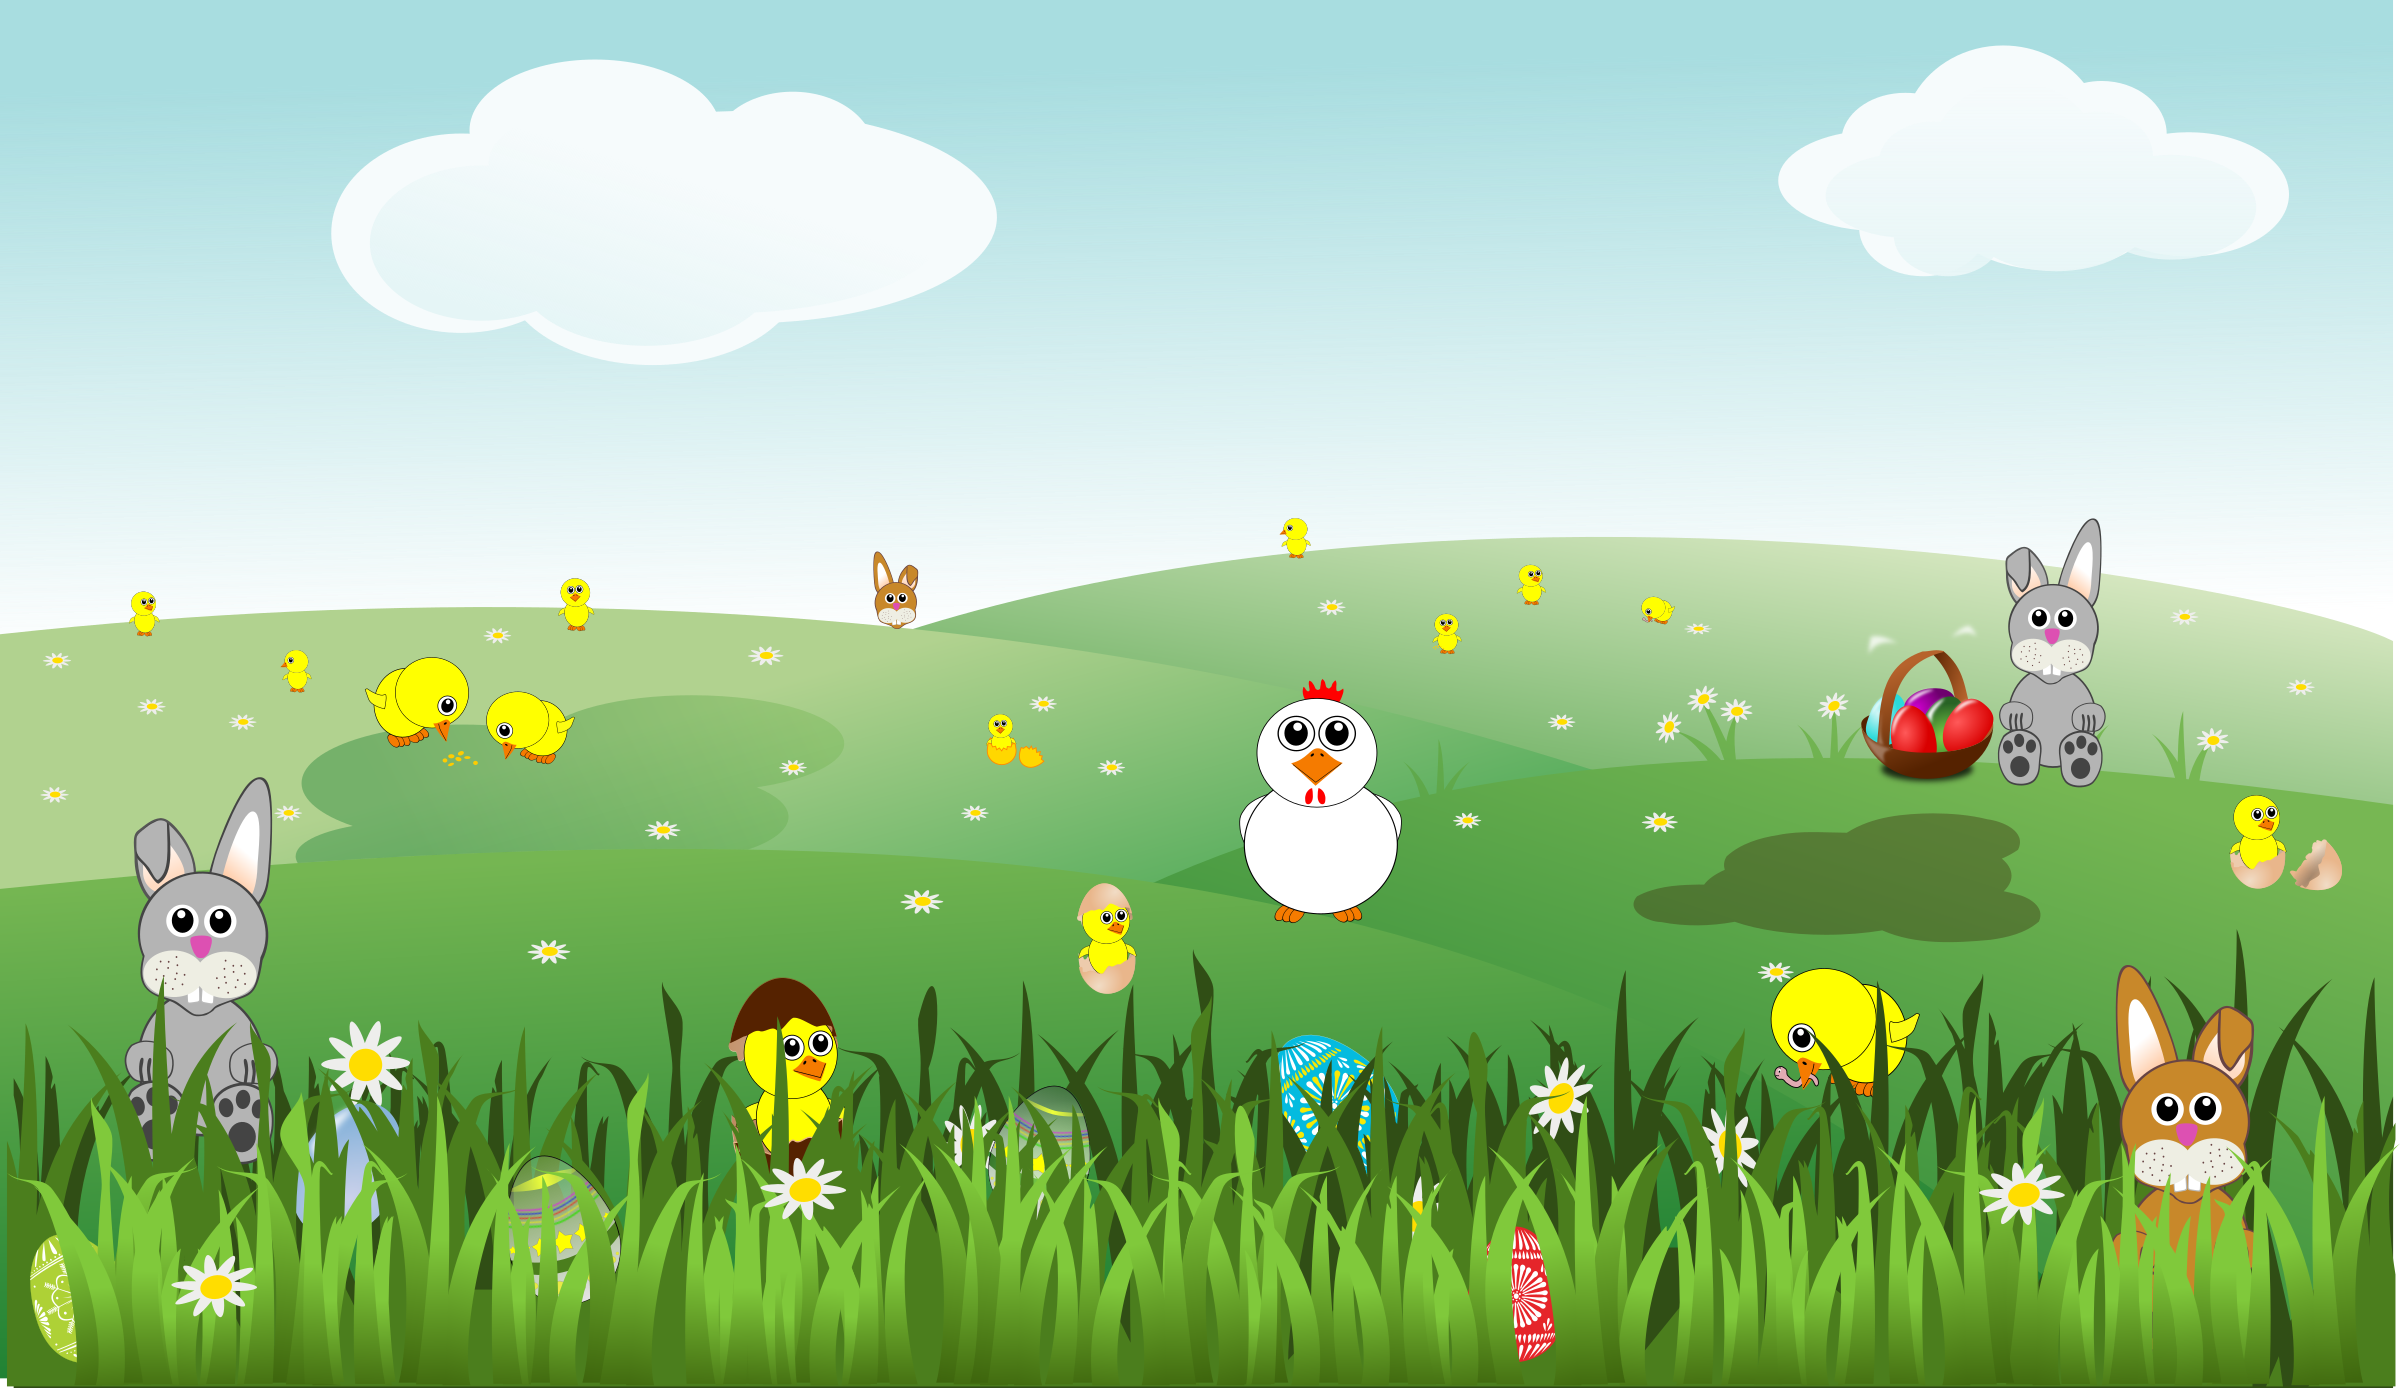 Easter landscape with bunnies. Environment clipart scenery